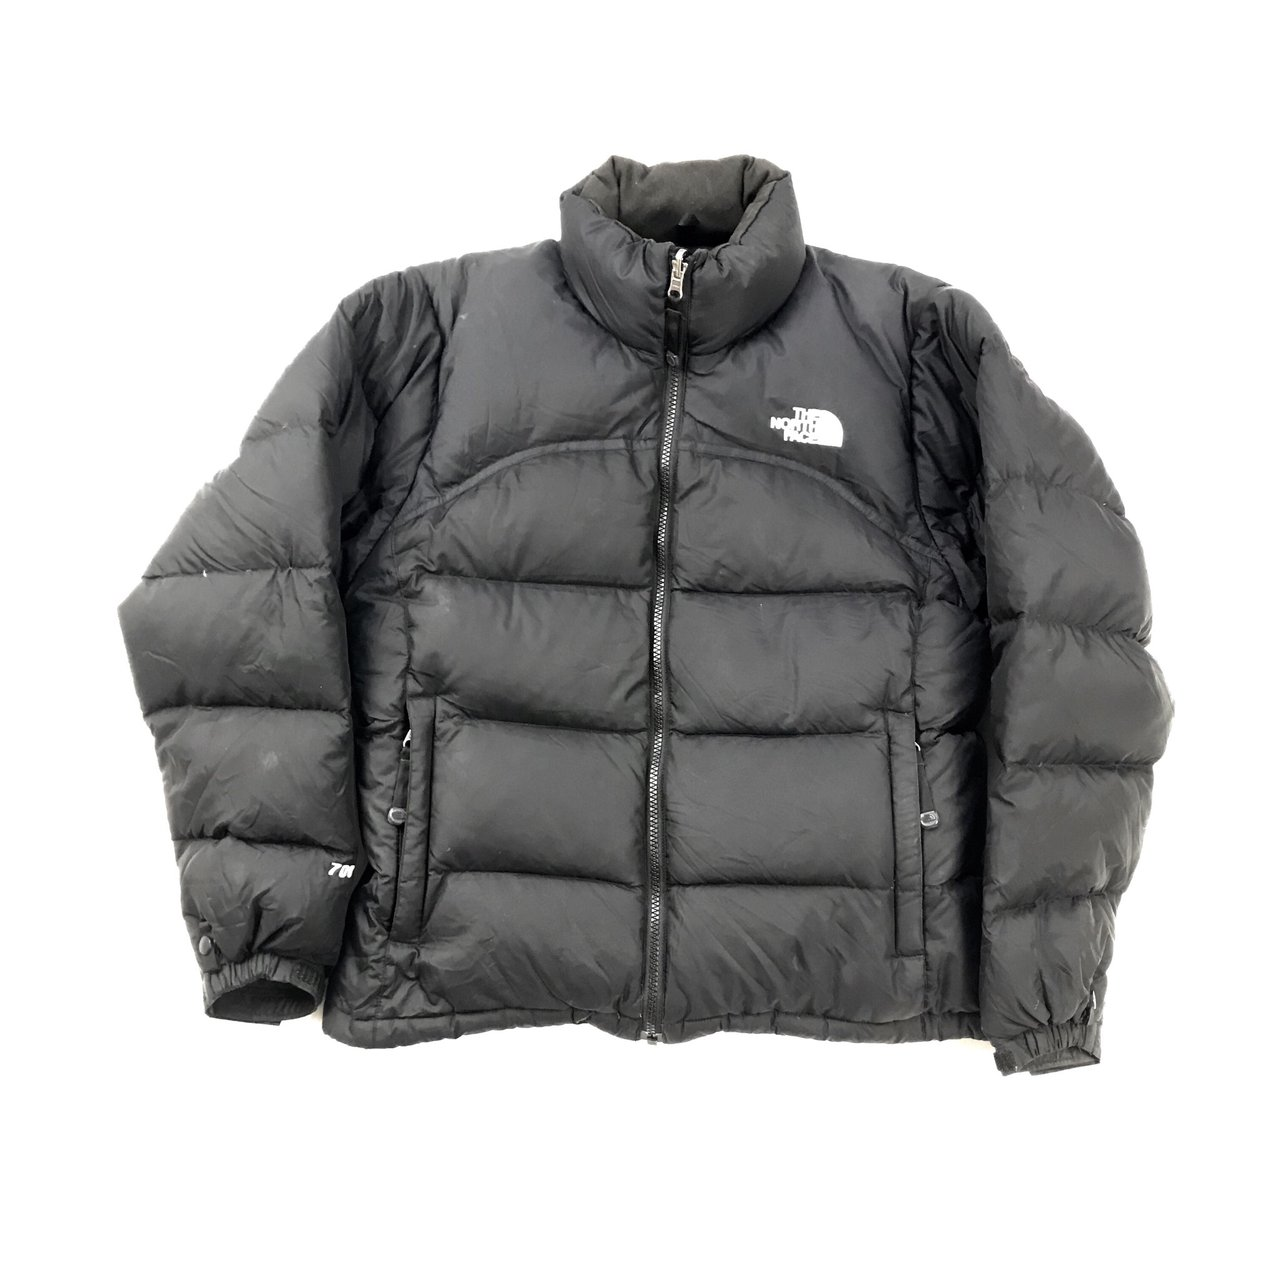 The North Face Puffer Jacket Black   White 700 Fill Down - Depop 4affa46ce